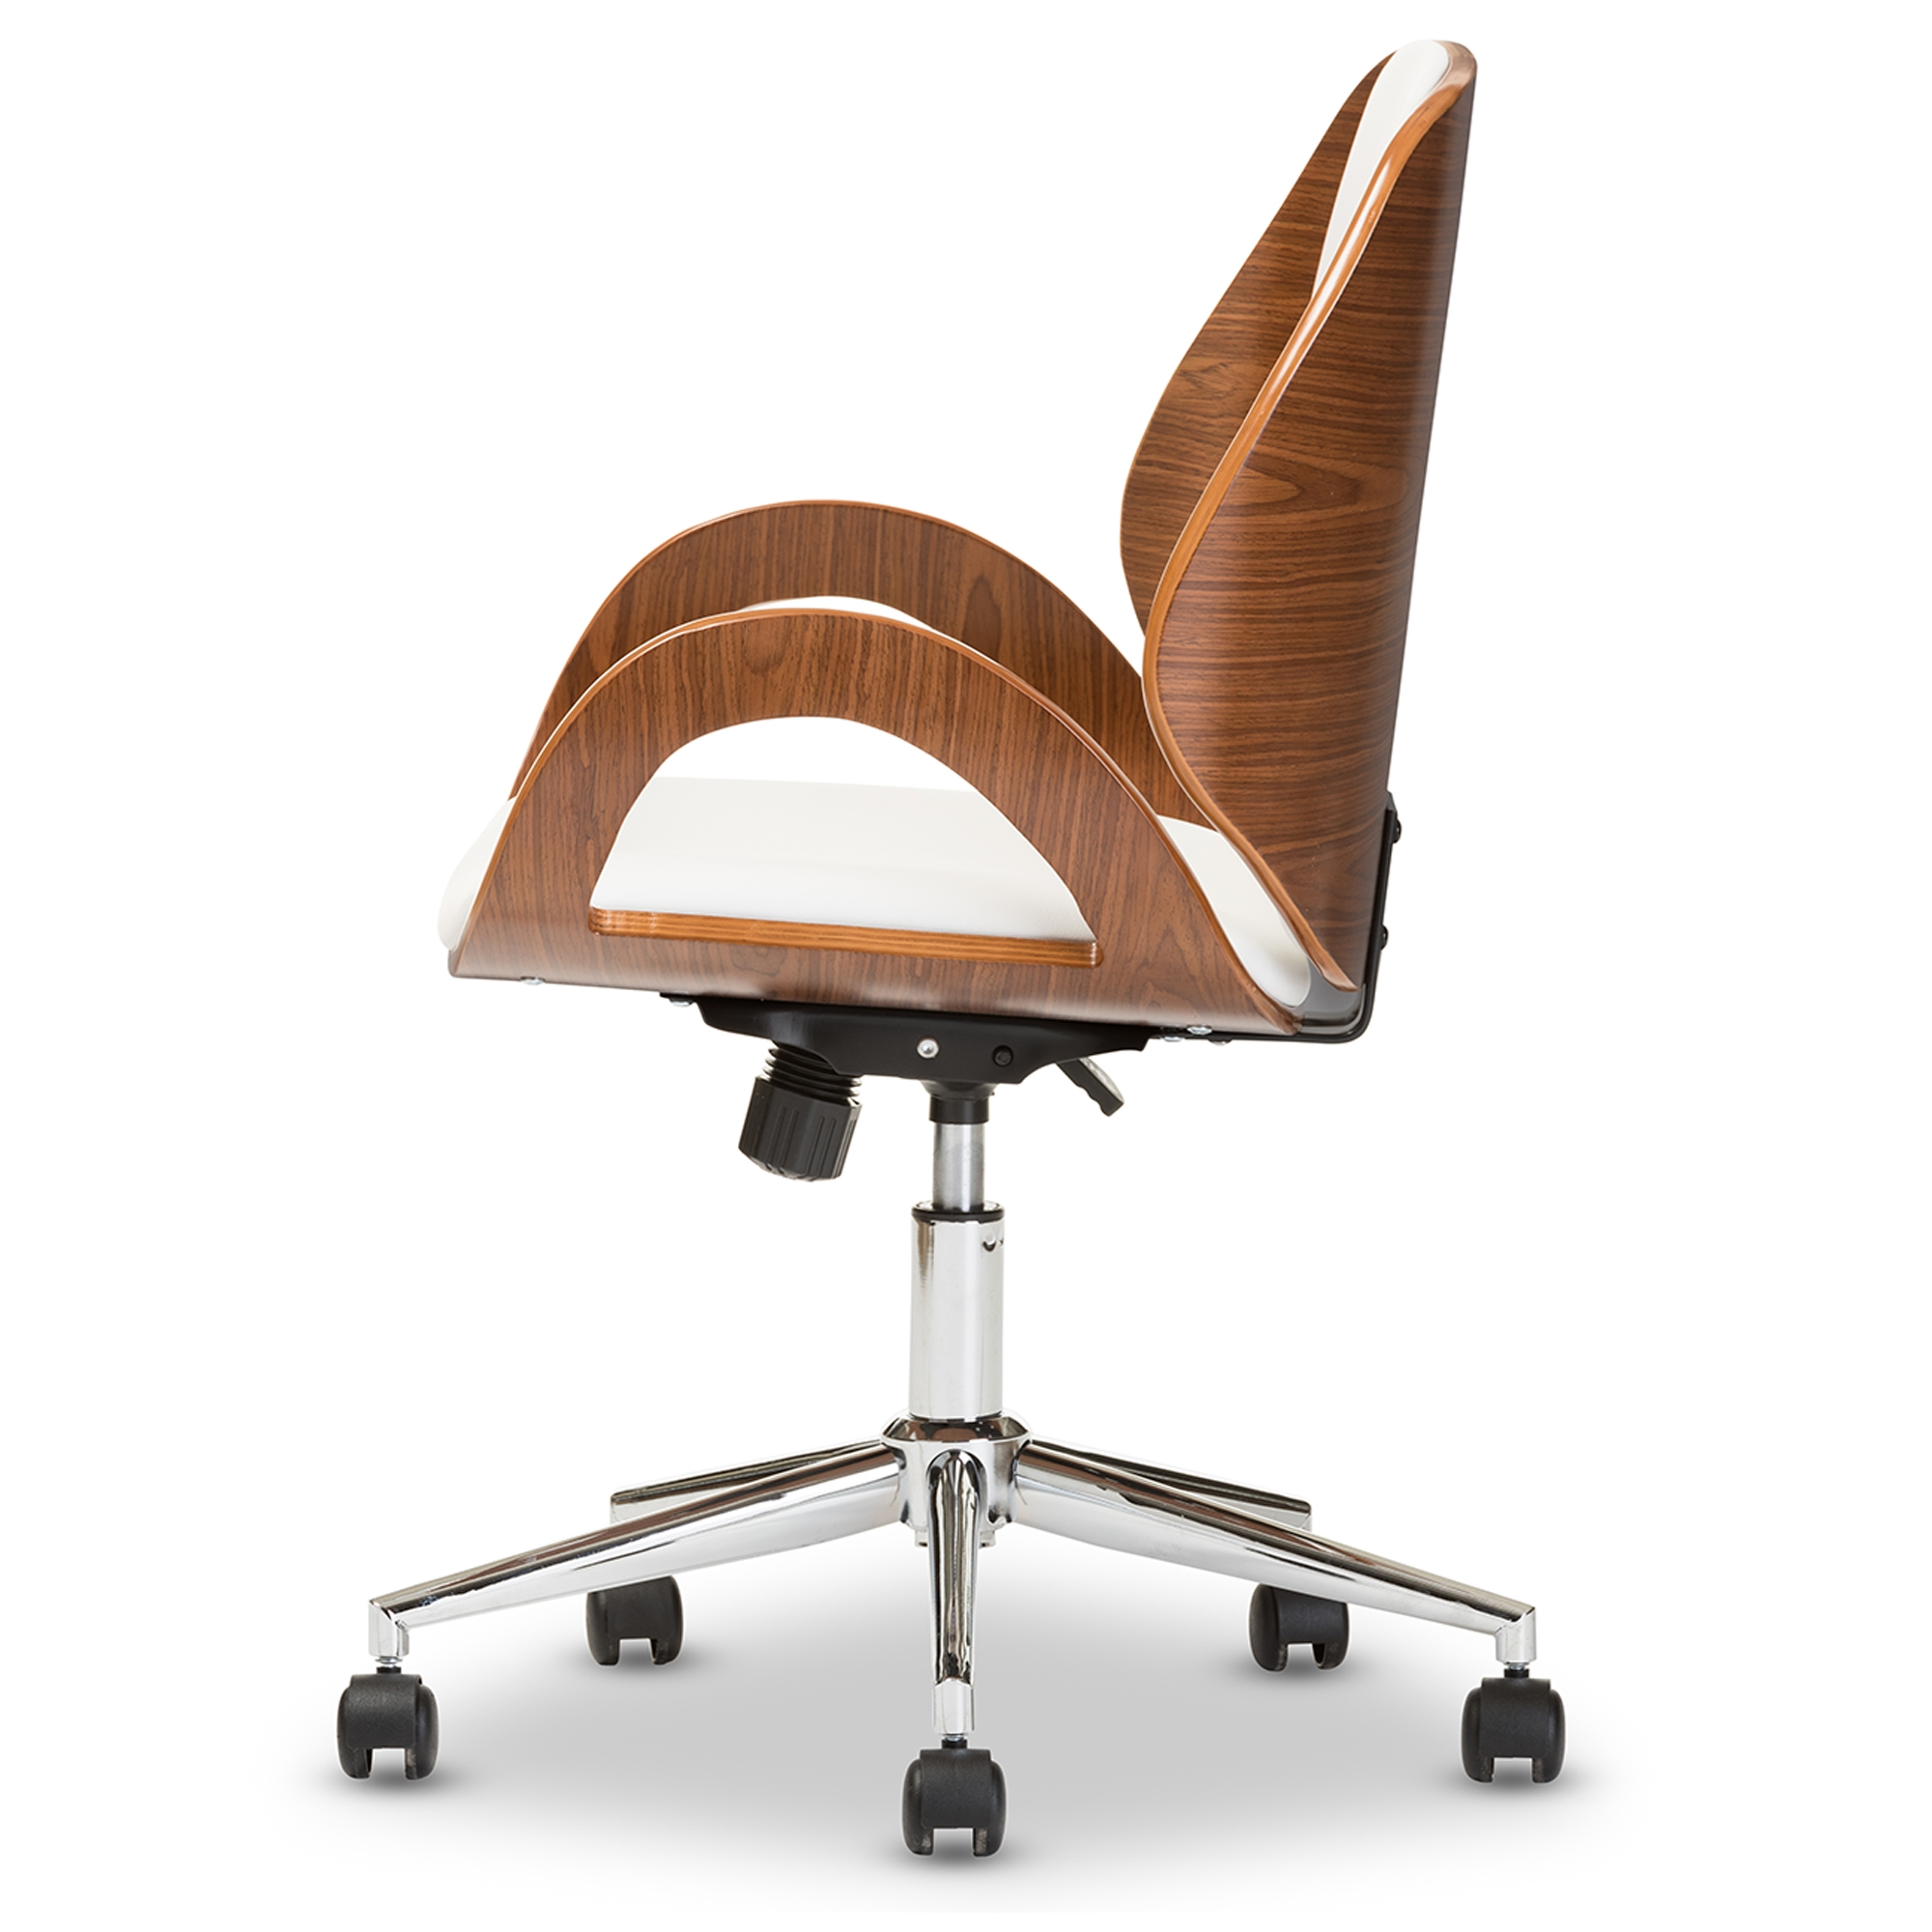 ... Baxton Studio Watson Modern And Contemporary White And Walnut Office  Chair   BSOSDM2225 5  ...